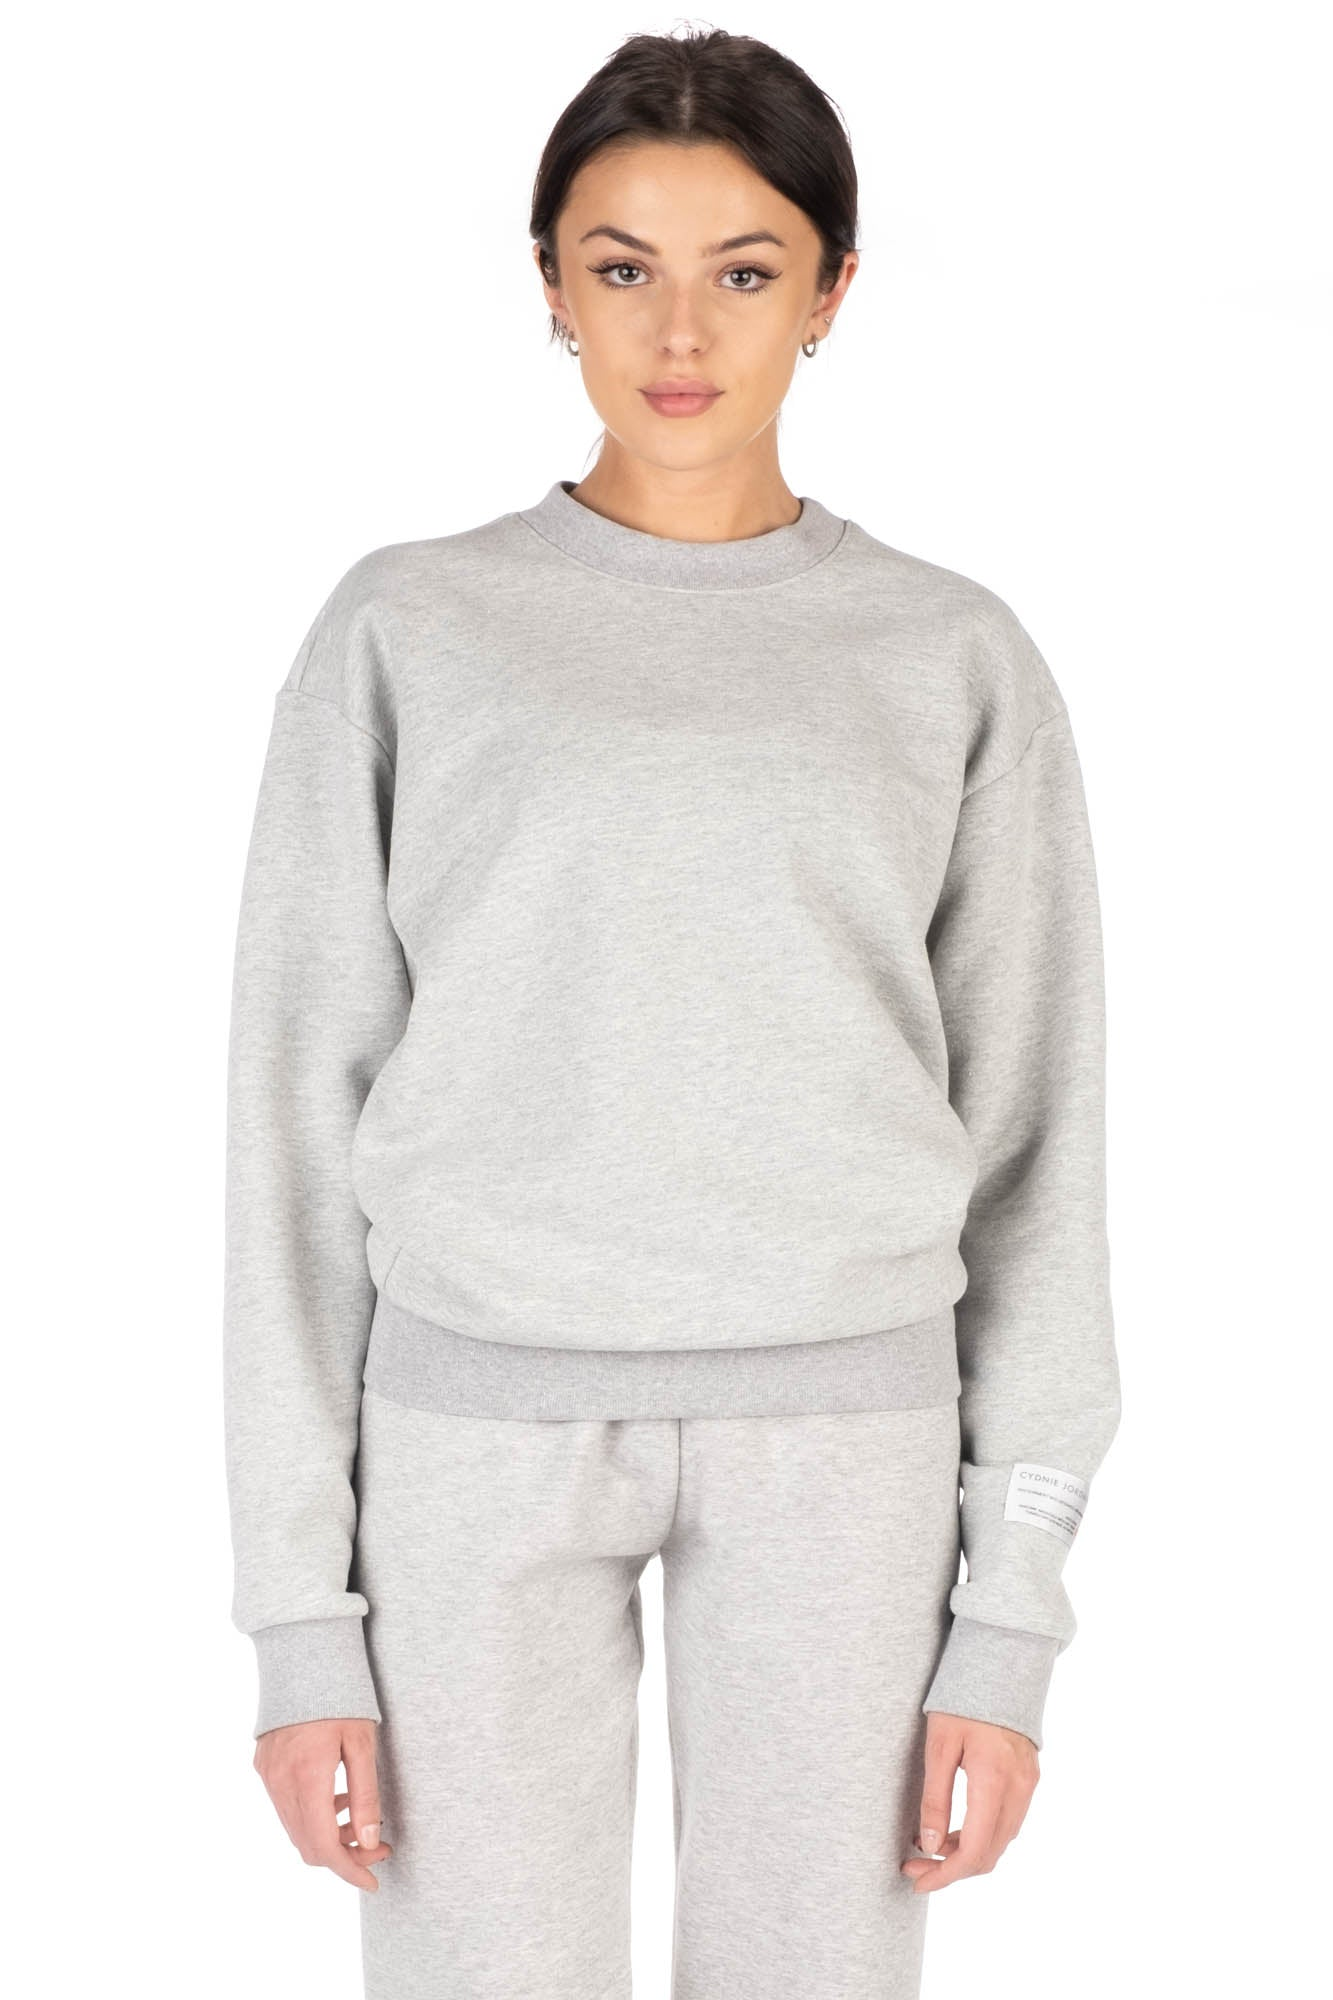 UNISEX SWEATSHIRT - Grey